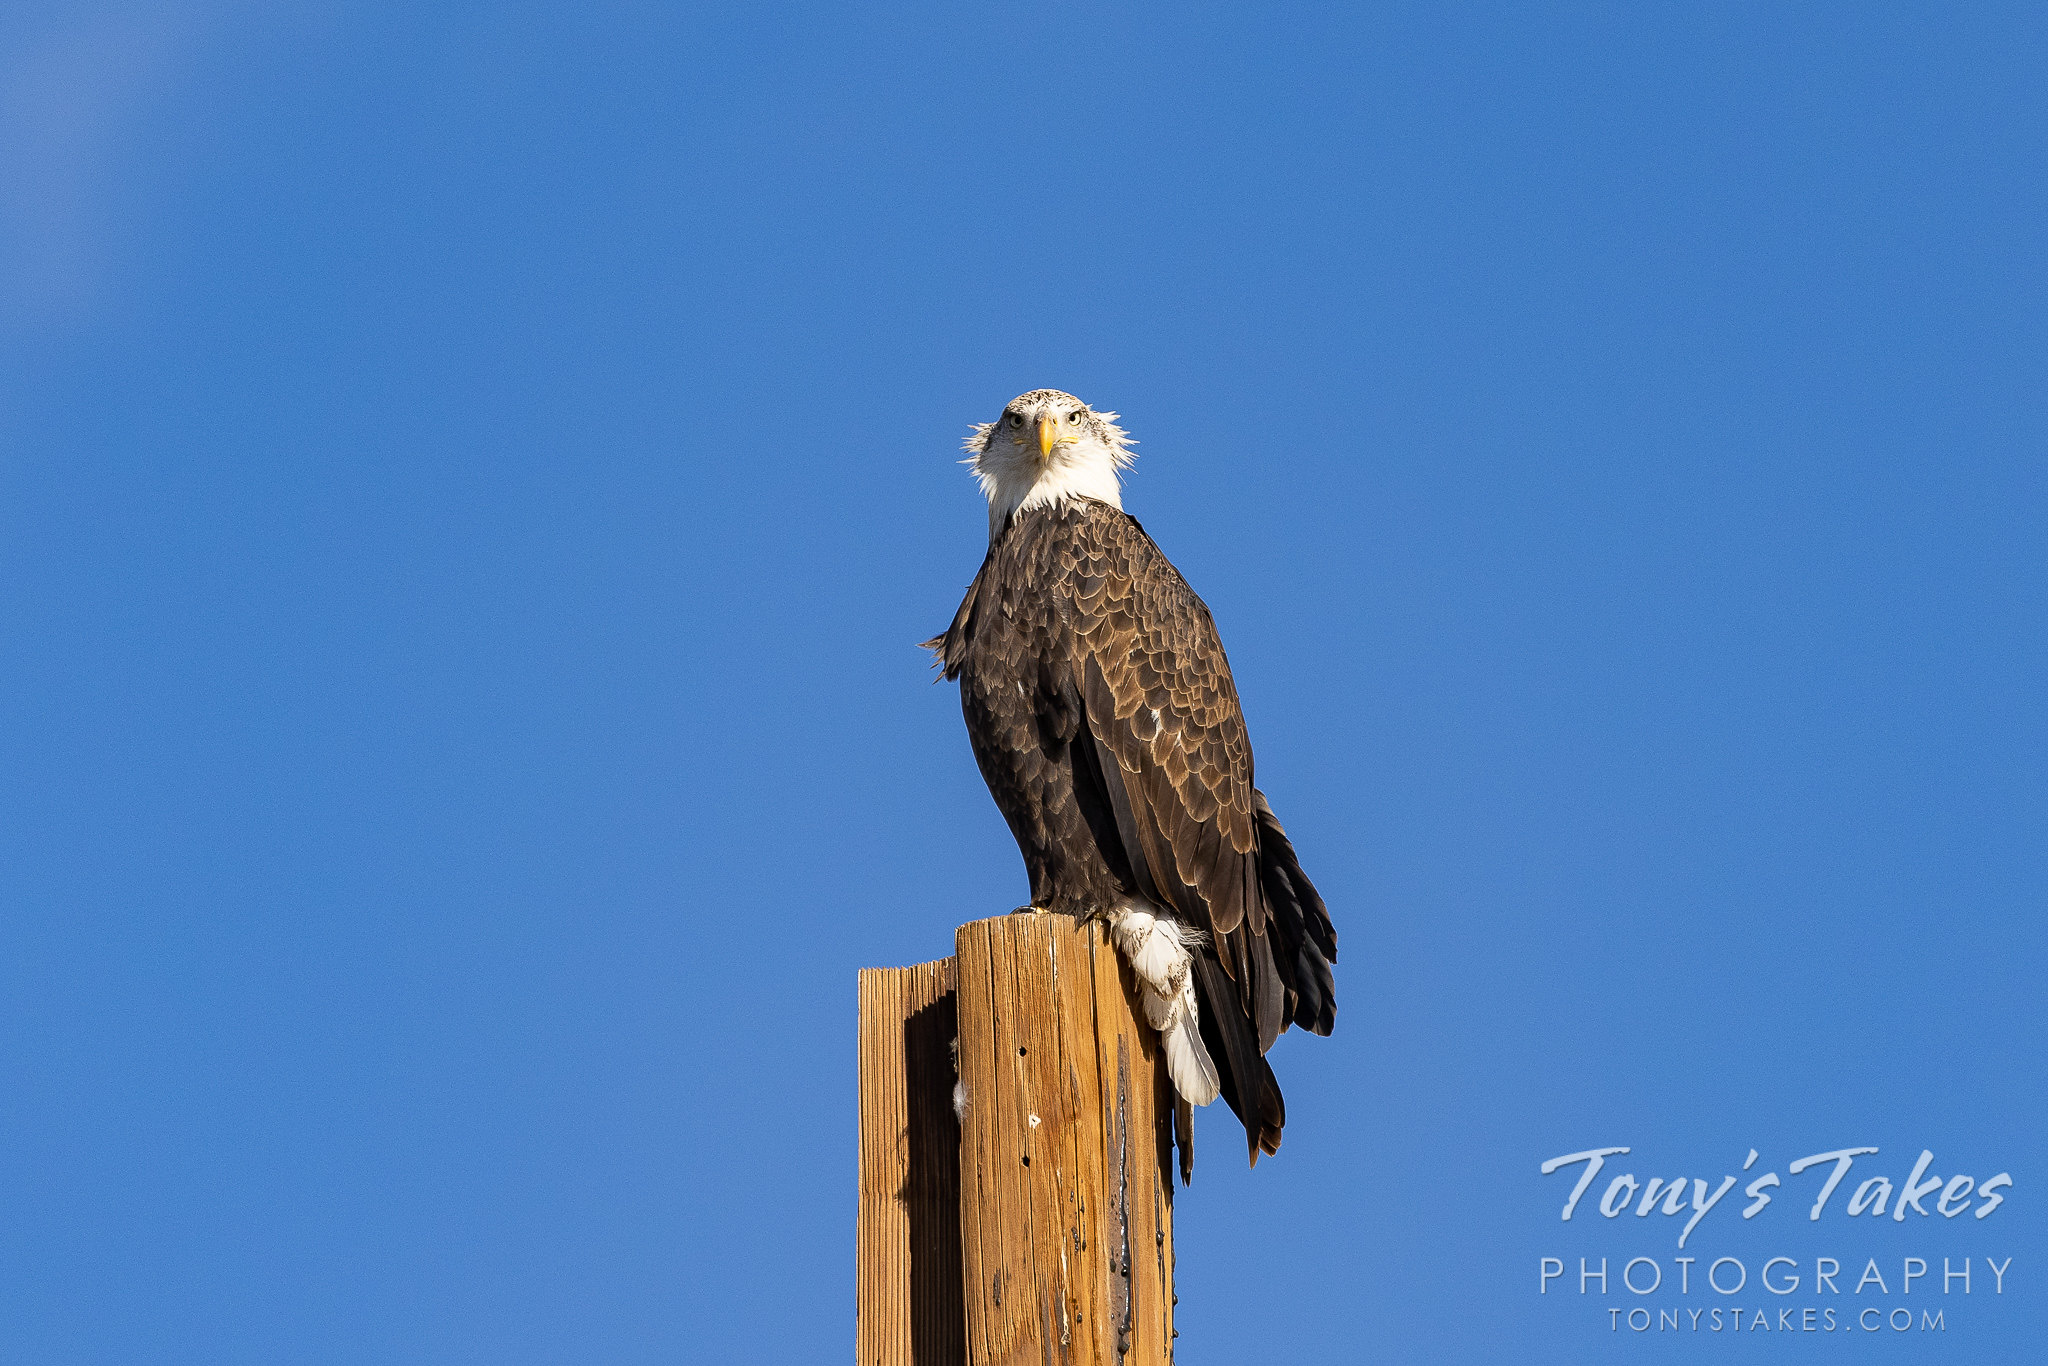 A bald eagle gets its head feathers ruffled by the wind. (Tony's Takes)